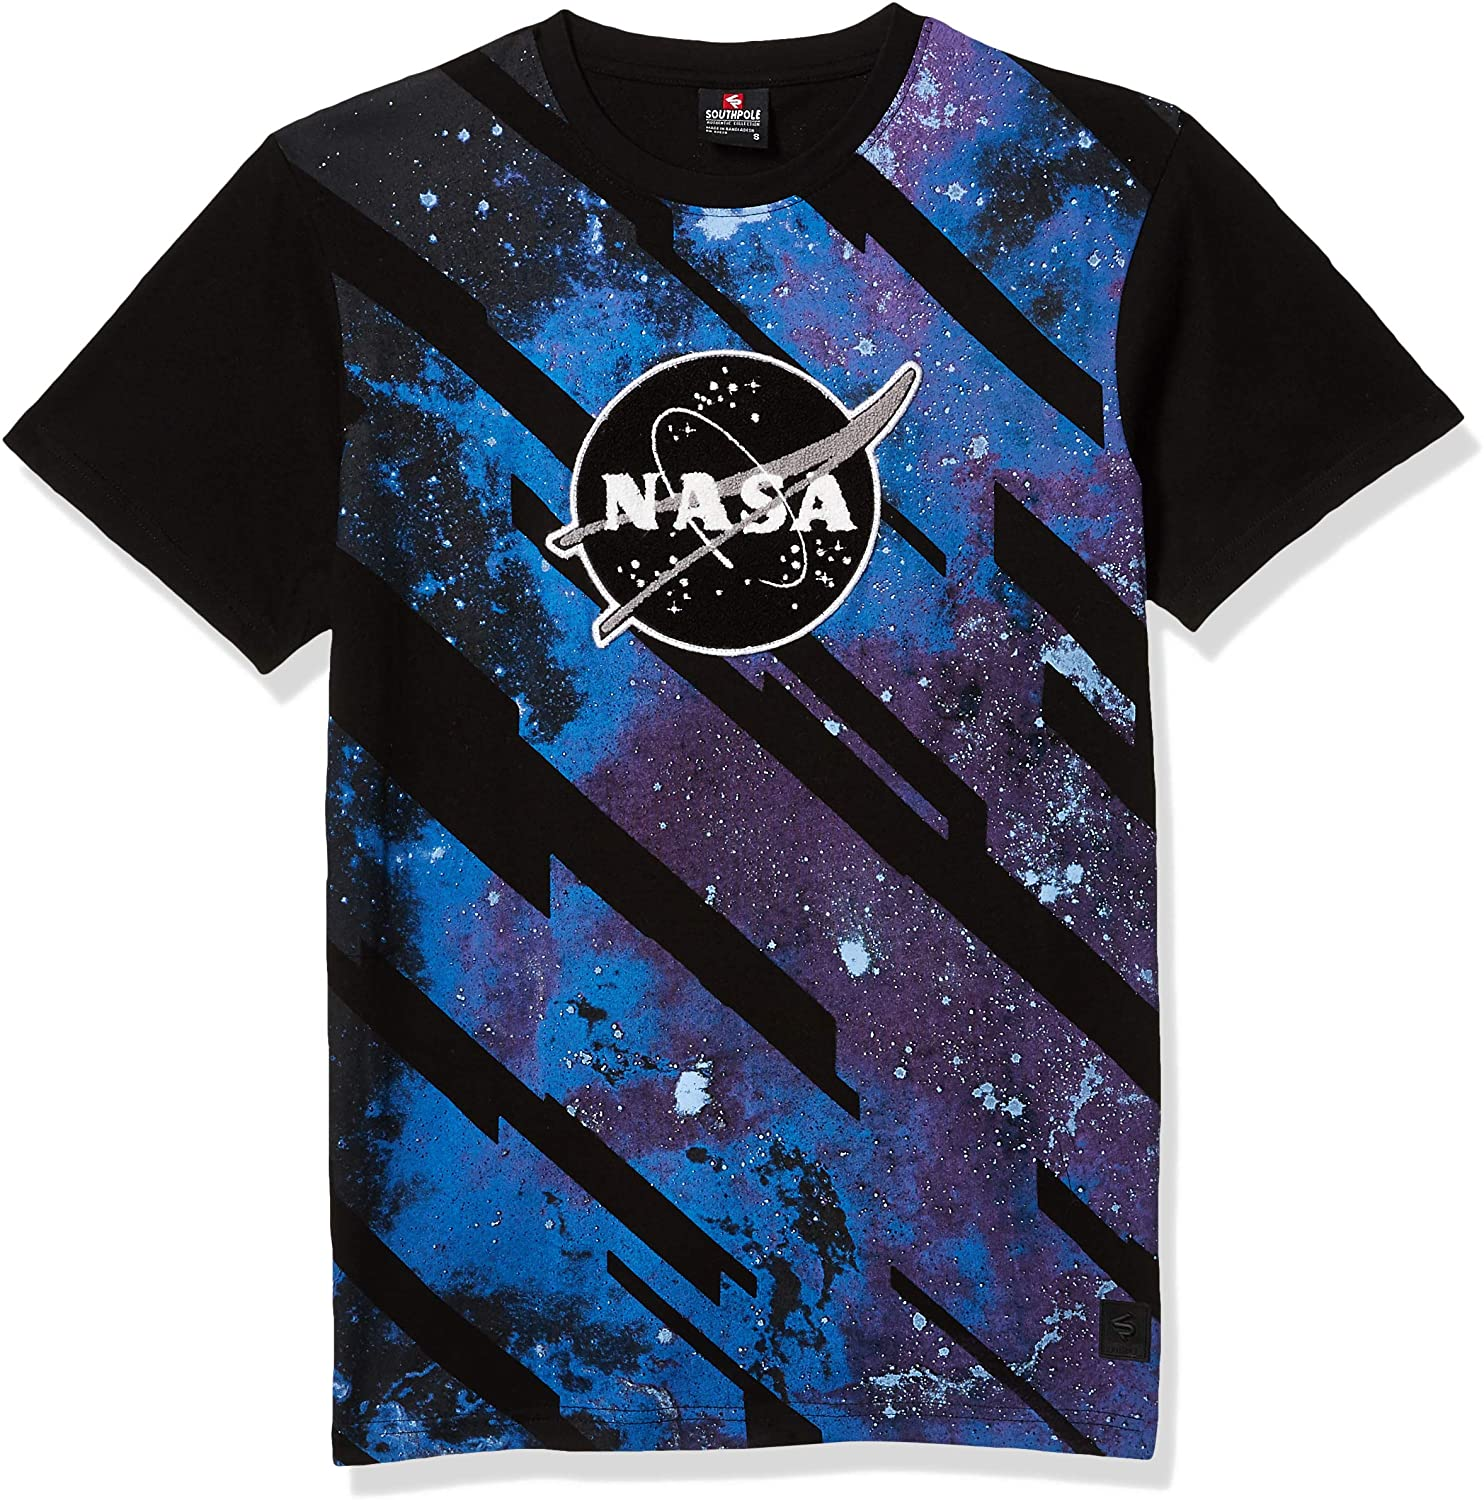 Southpole NASA Black Meatball Universe T-Shirt